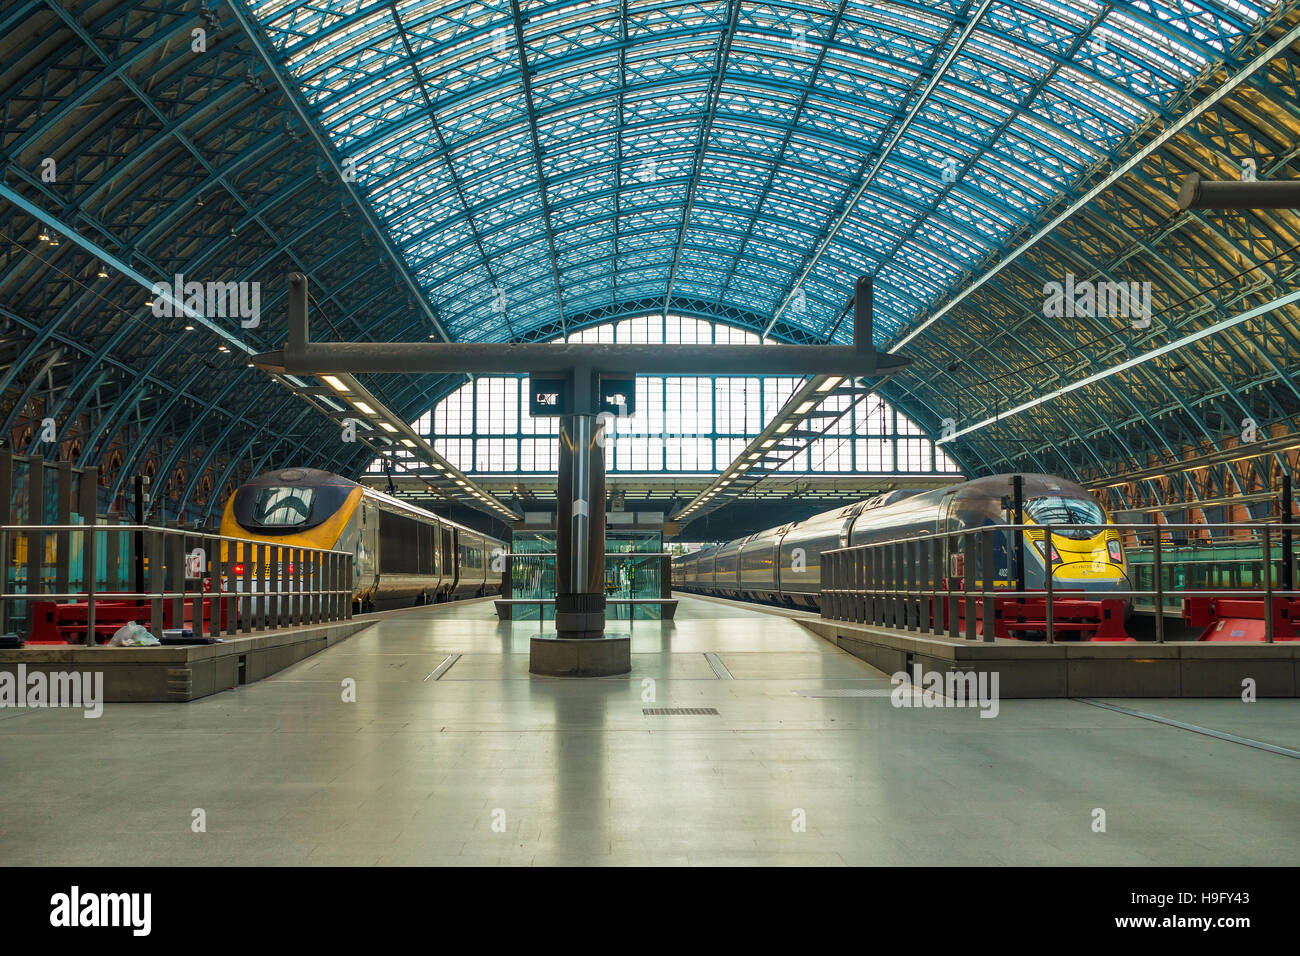 Eurostar High Speed Hs1 London Paris Europa Bahnreisen Stockfoto